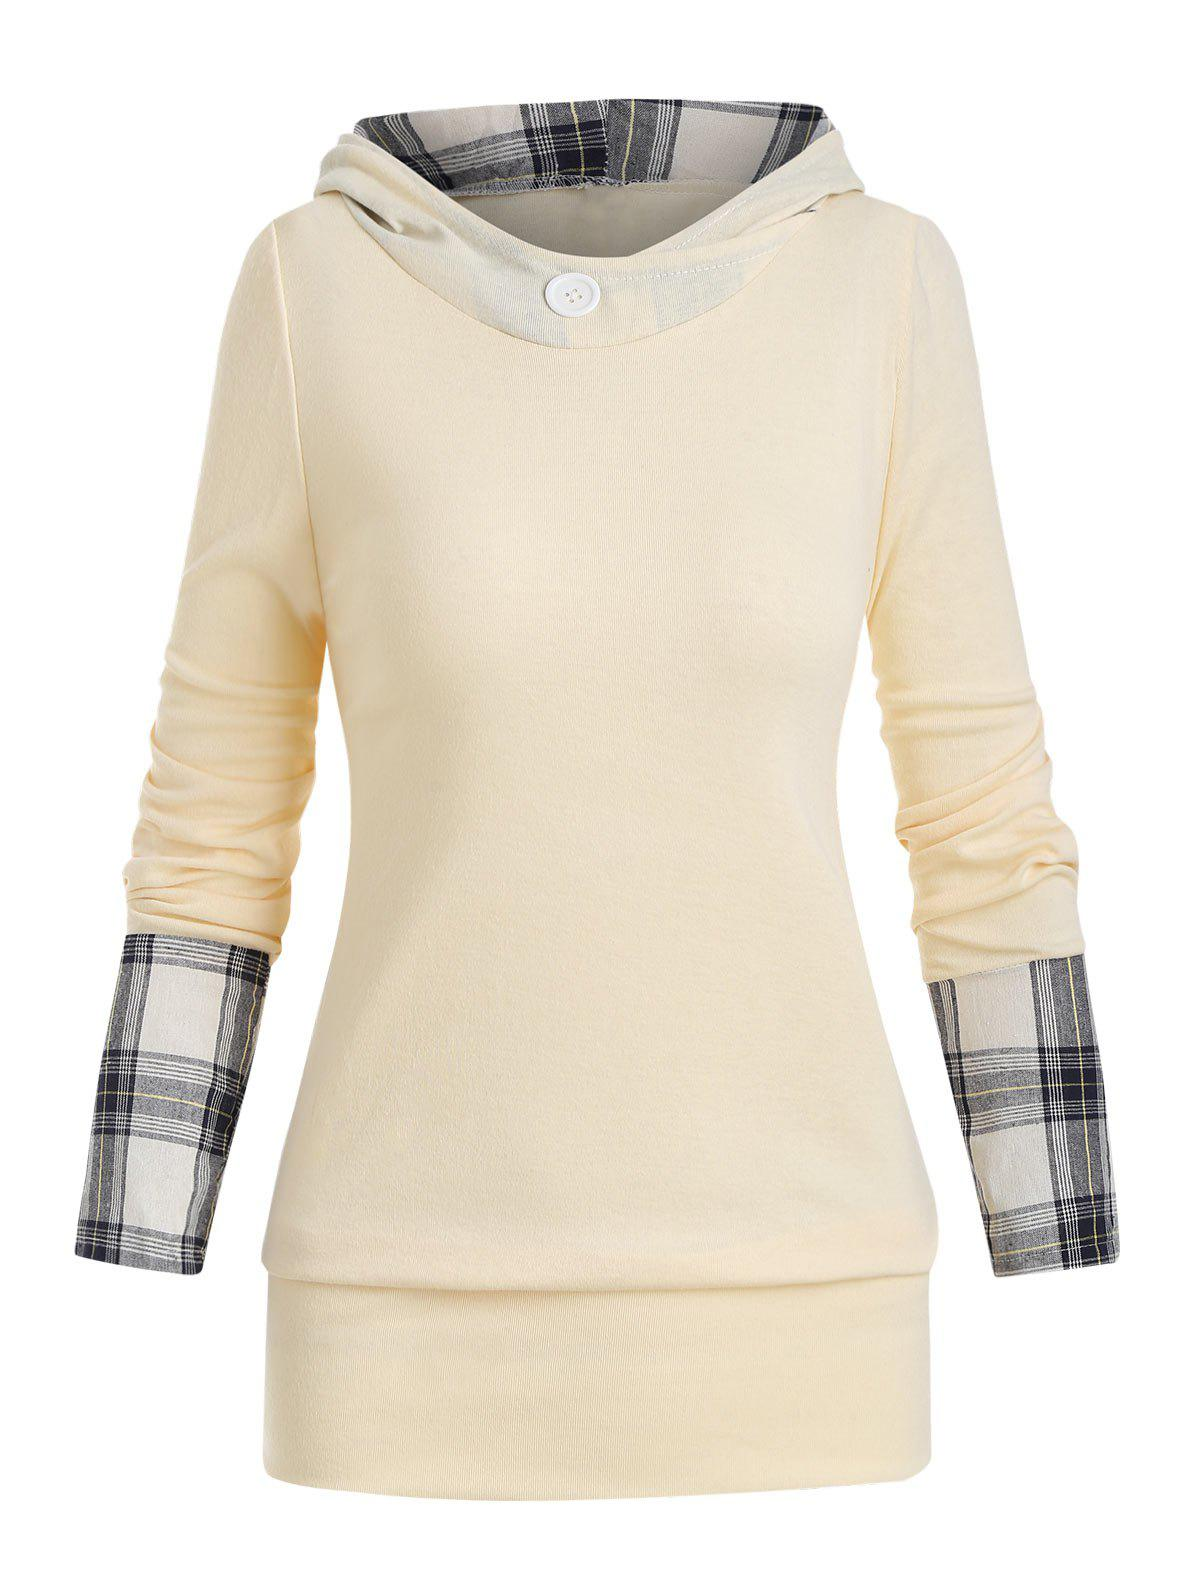 Hooded Plaid Panel Jersey Top - LIGHT YELLOW L